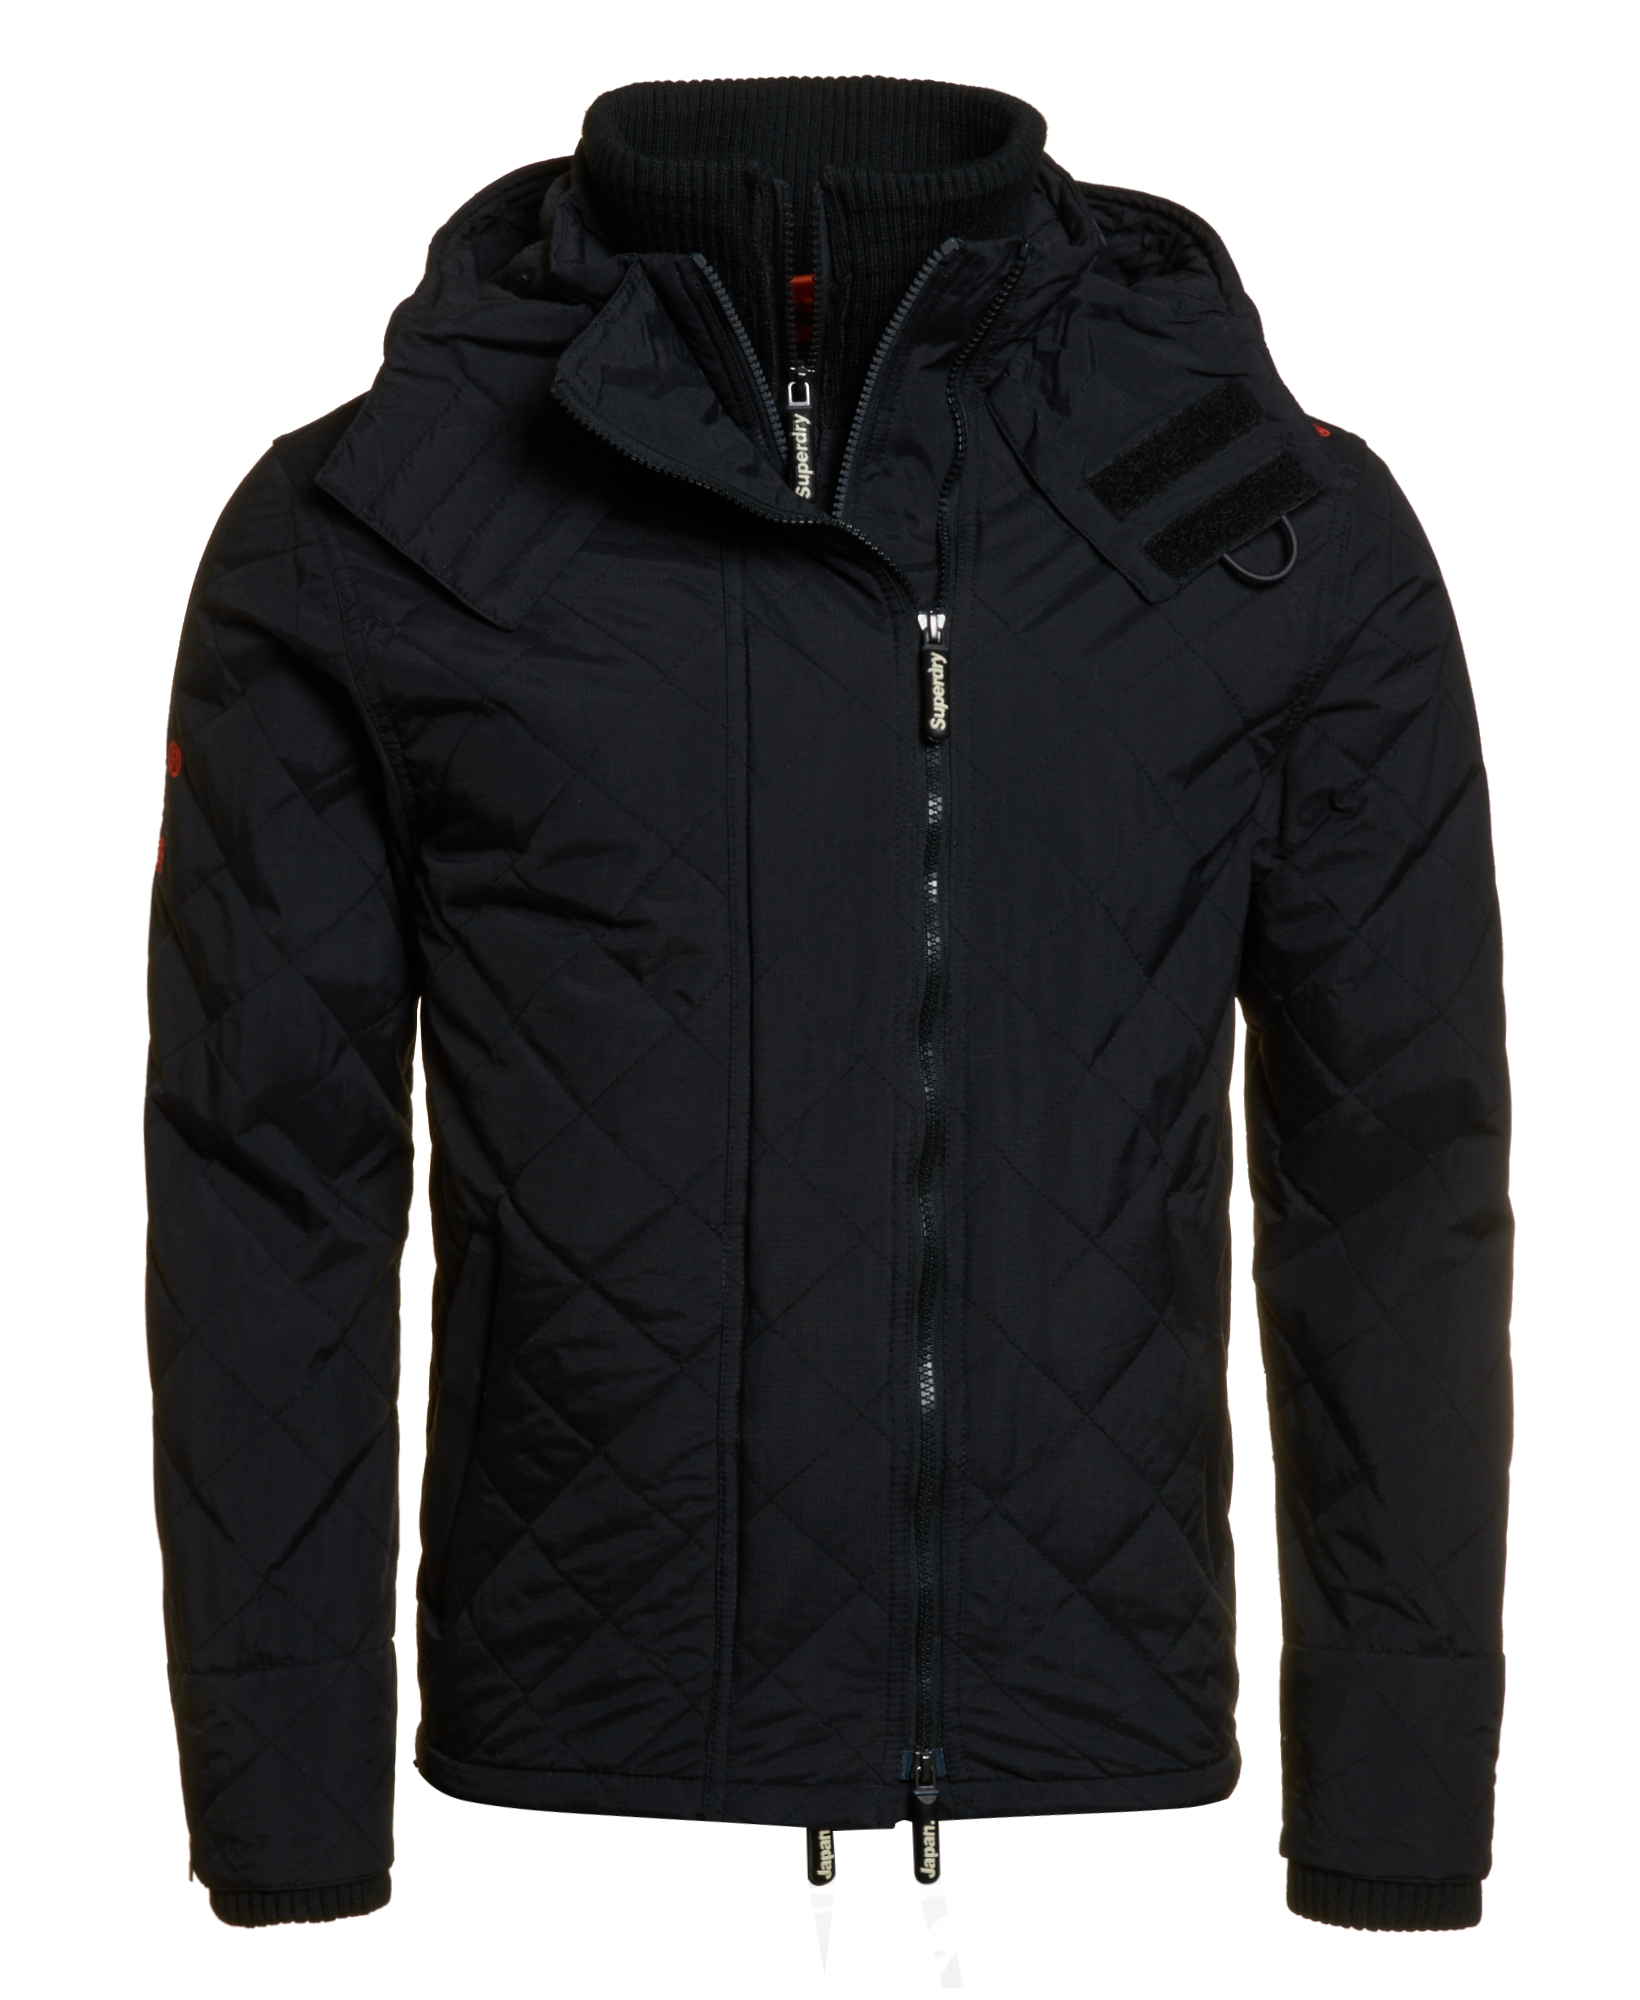 superdry herren jacke hooded polar windcheater modische. Black Bedroom Furniture Sets. Home Design Ideas